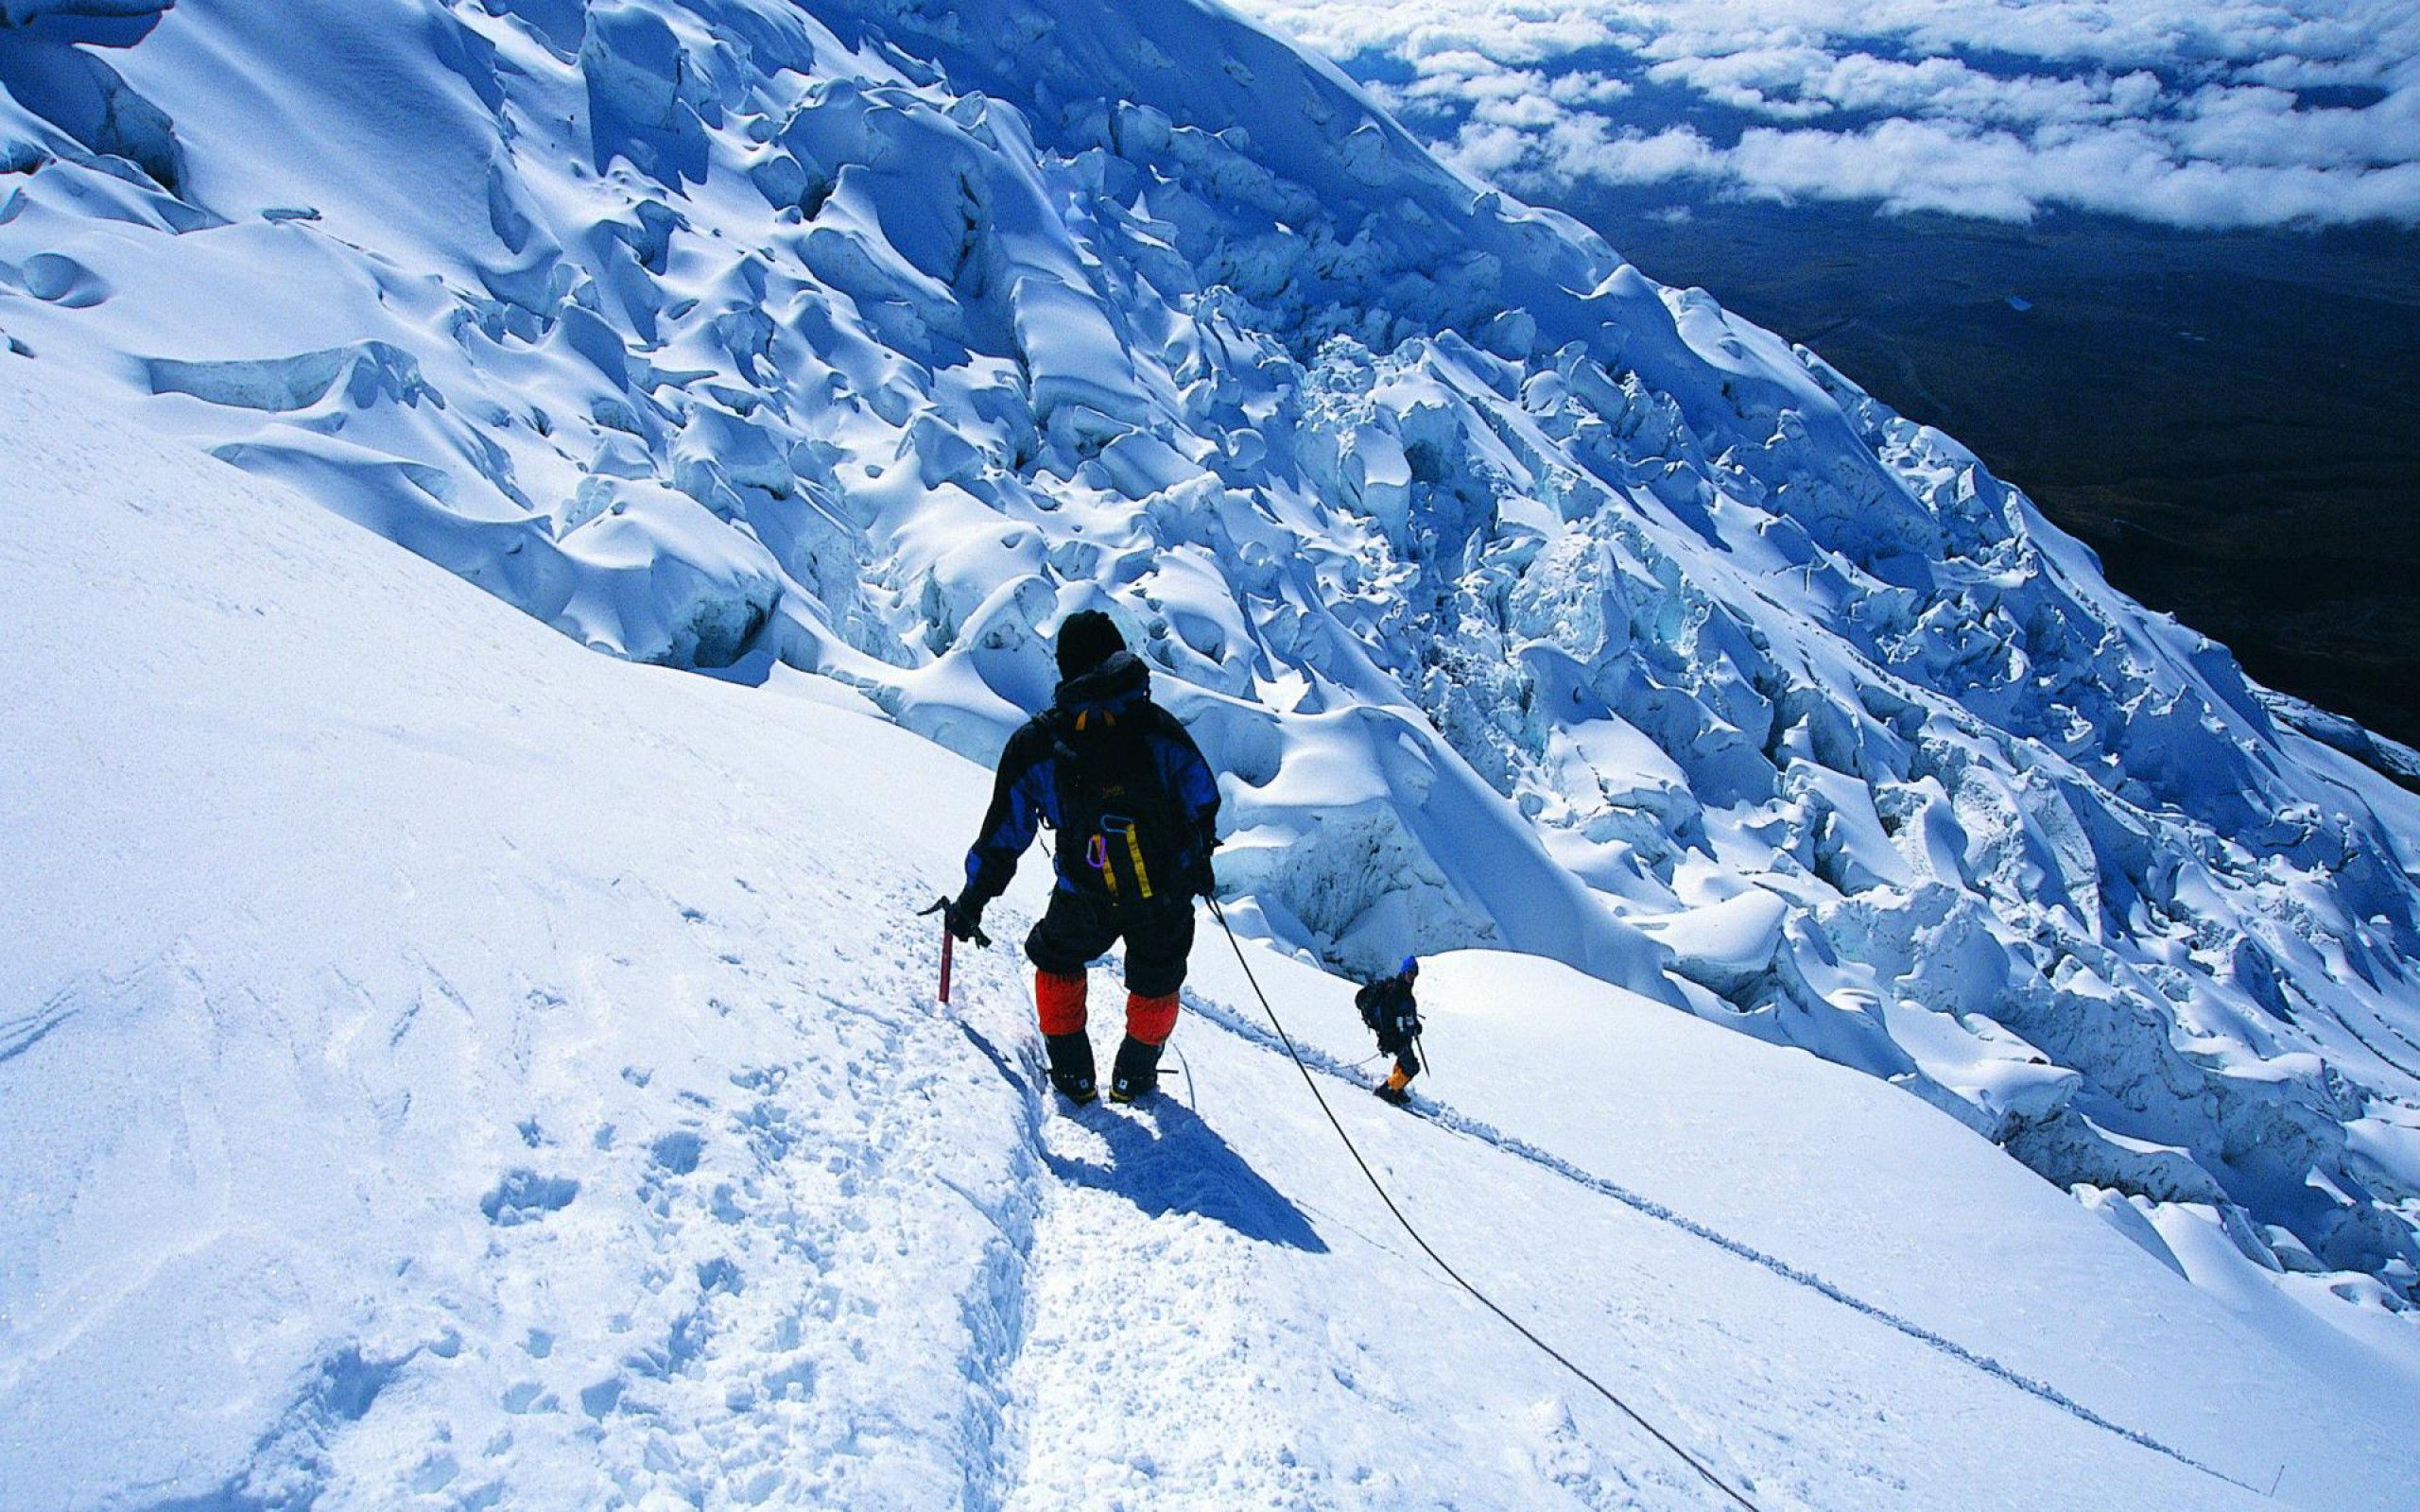 2560x1600 - Mountaineering Wallpapers 23